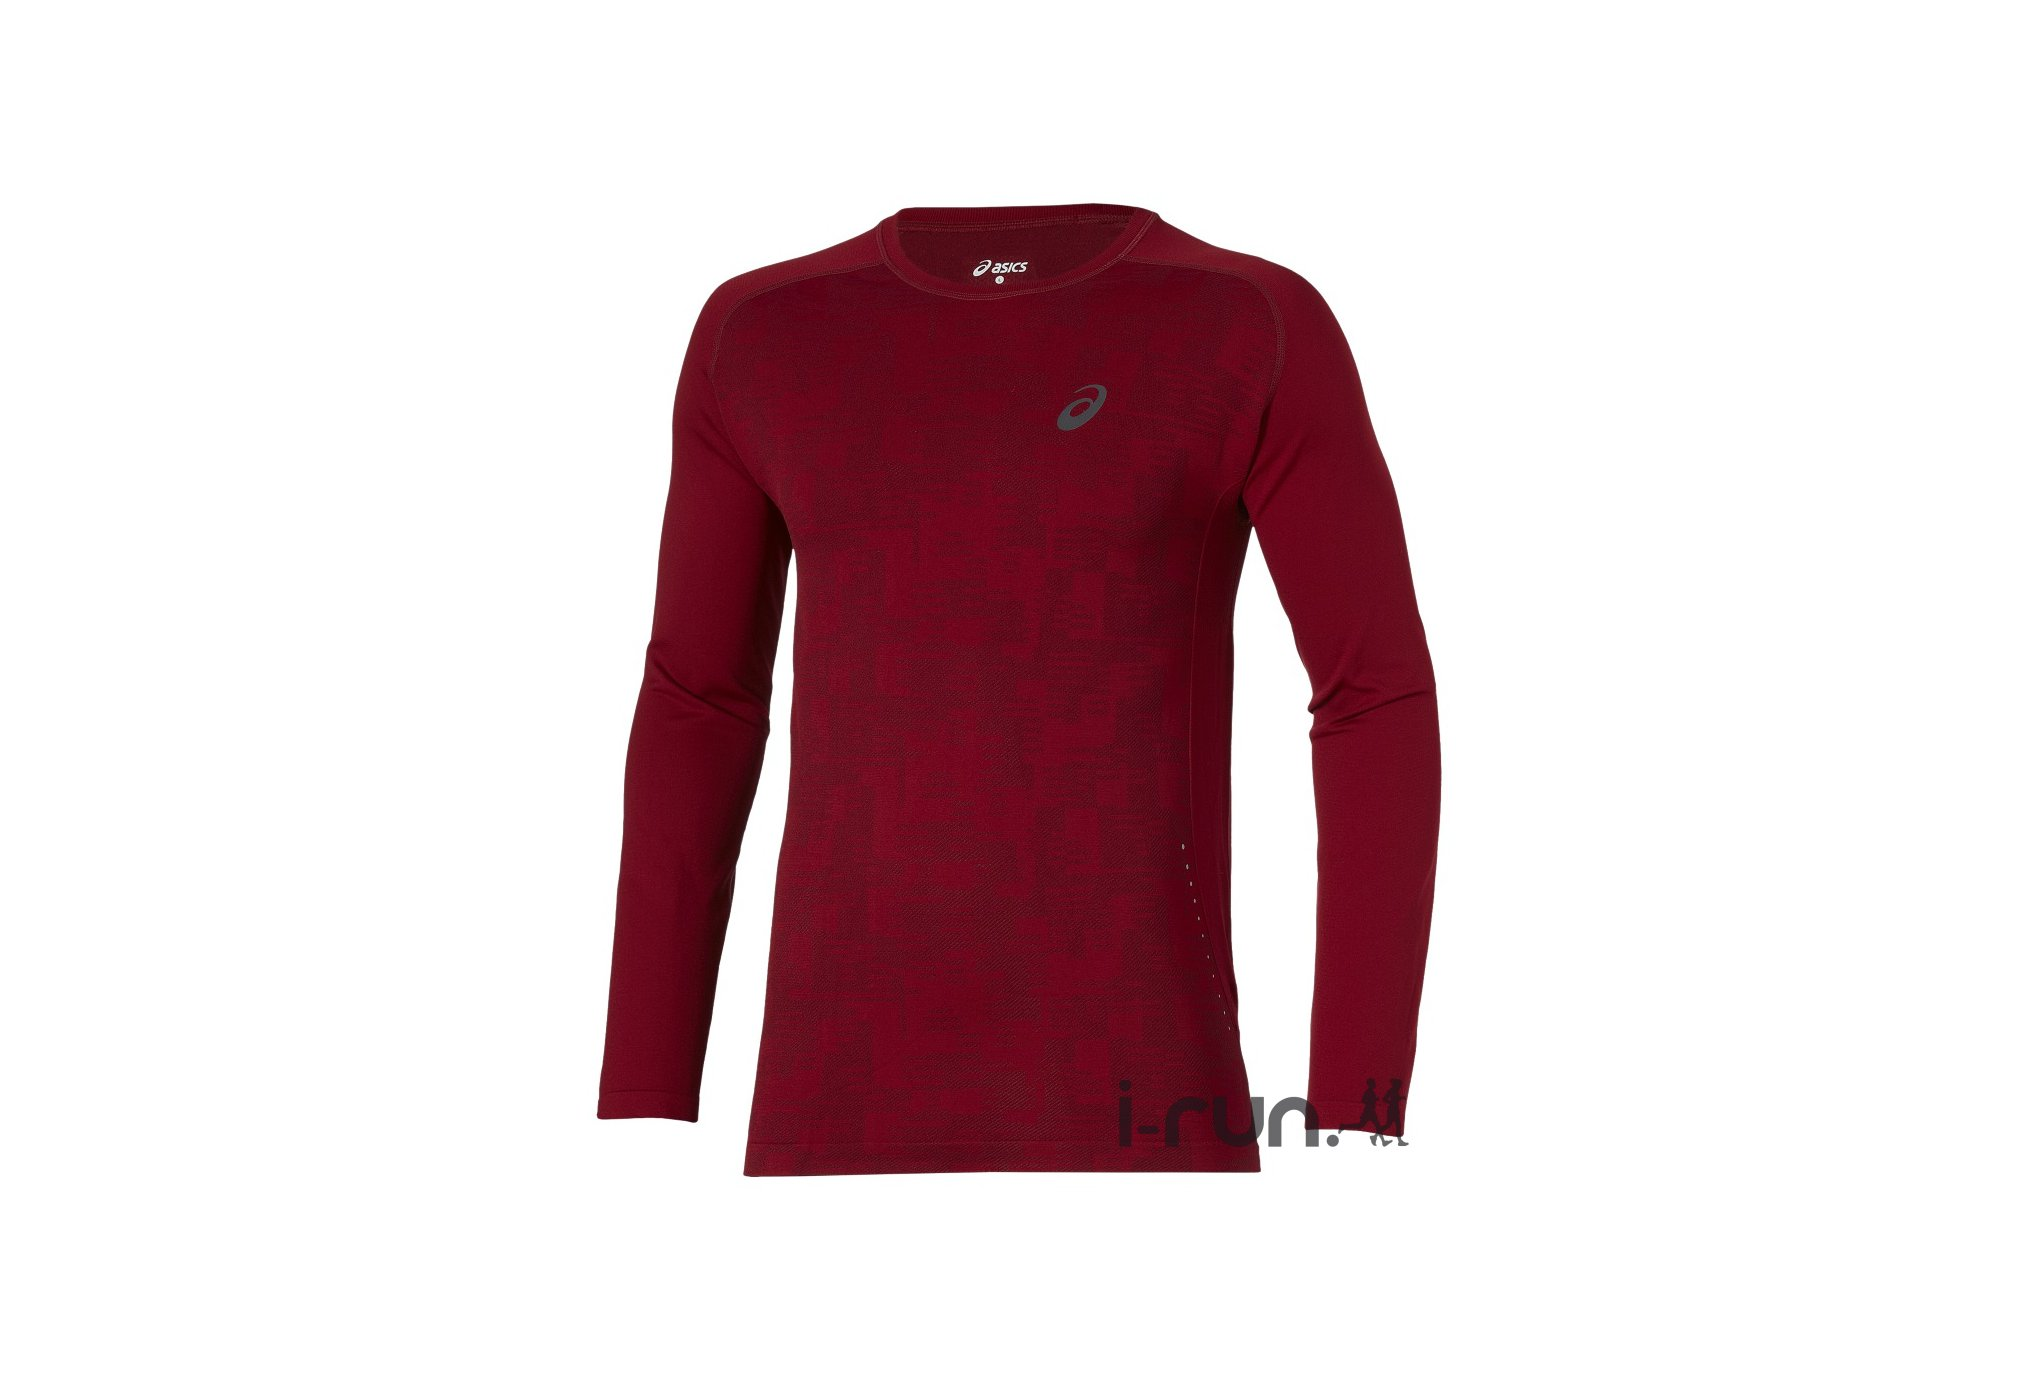 Asics Tee-Shirt Seamless Top M vêtement running homme